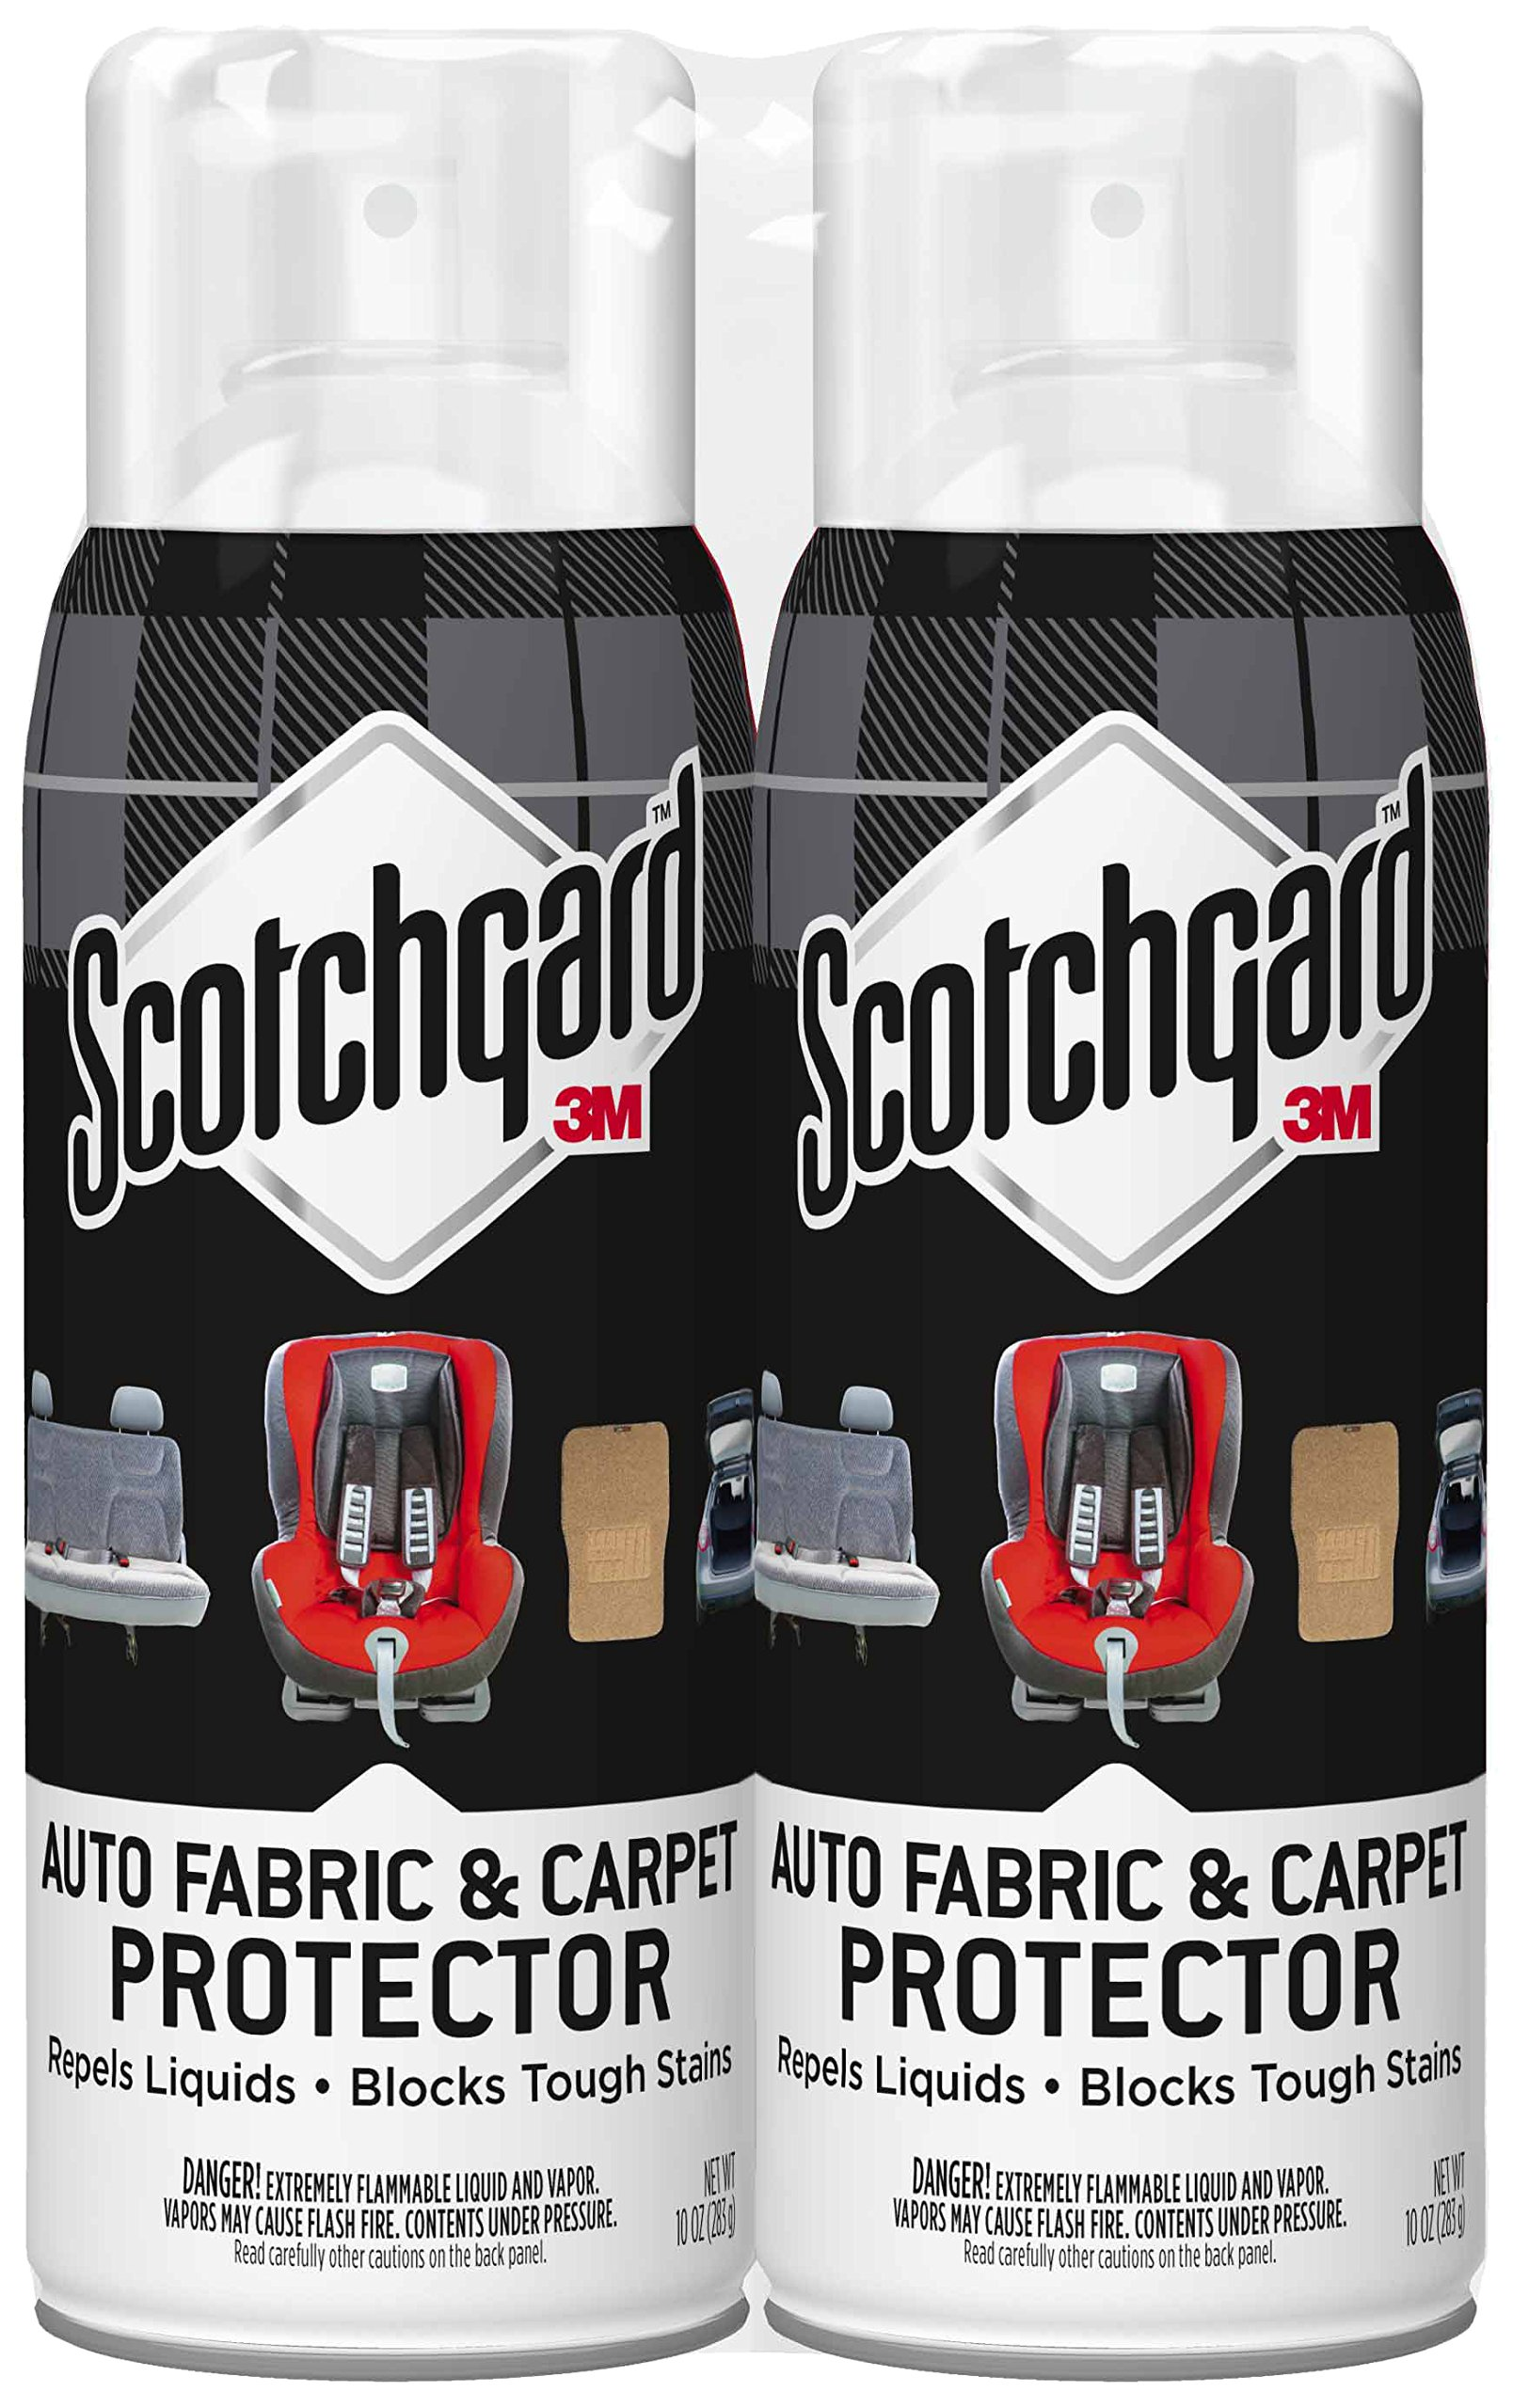 Scotchgard Auto Fabric & Carpet Protector, 2 Cans, 10-Ounces (20 Ounces Total) by Scotchgard